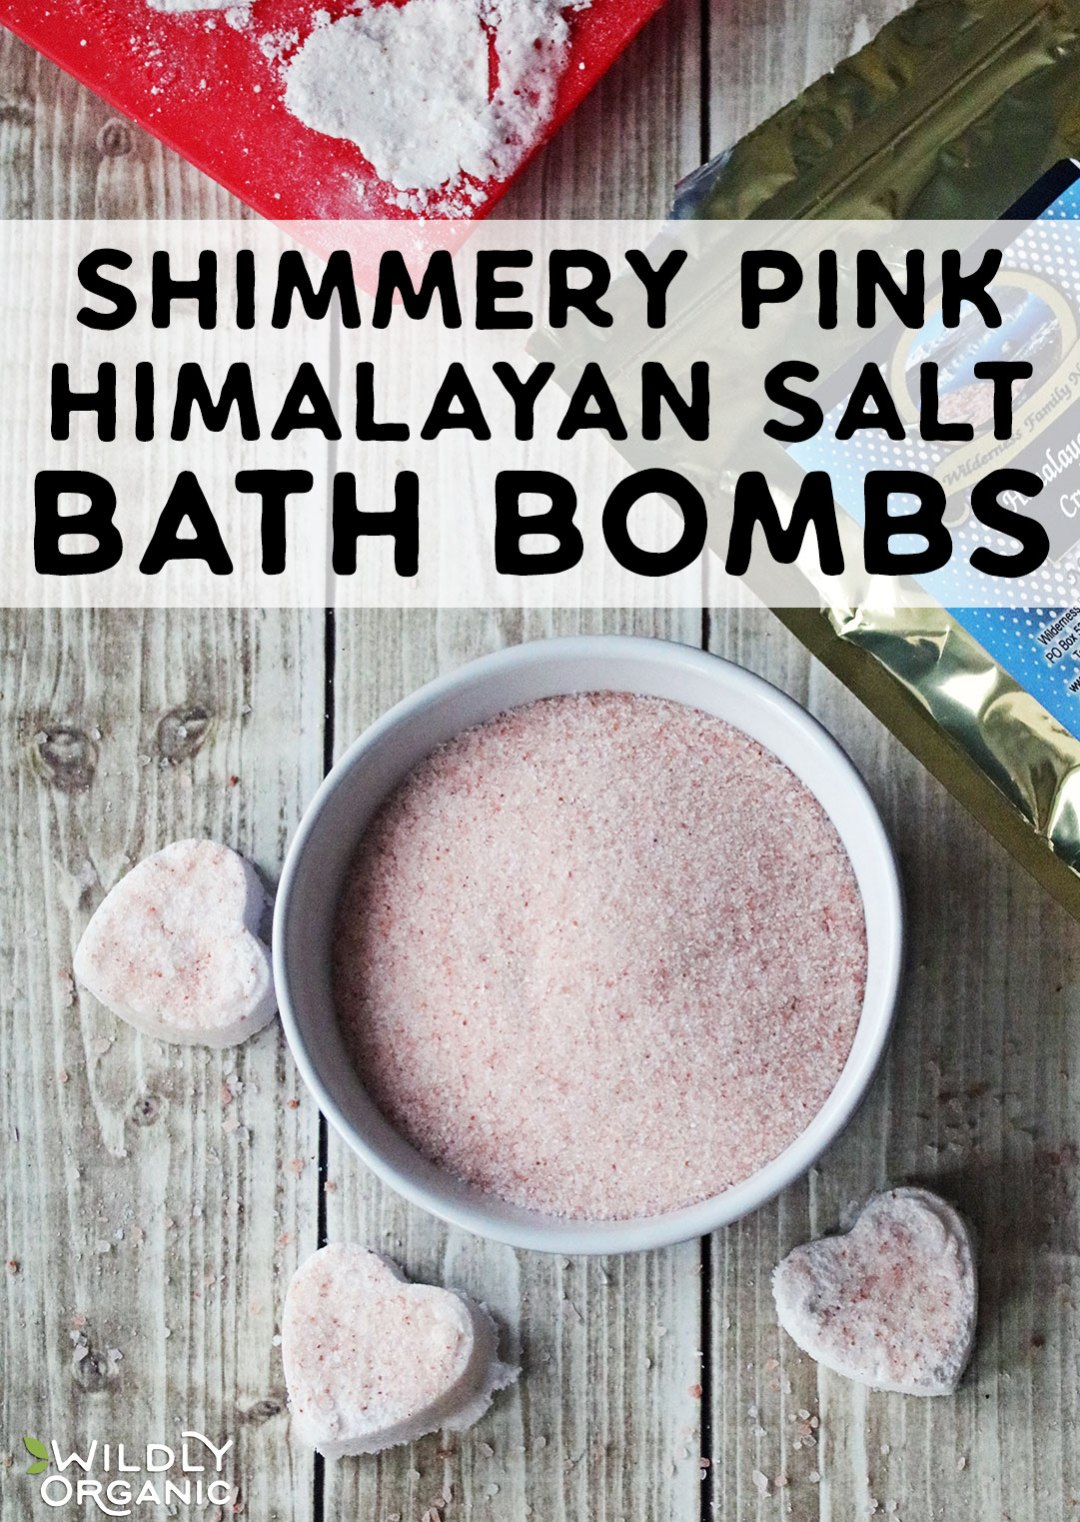 Photo of a bowl of salt with heart shaped bath bombs.